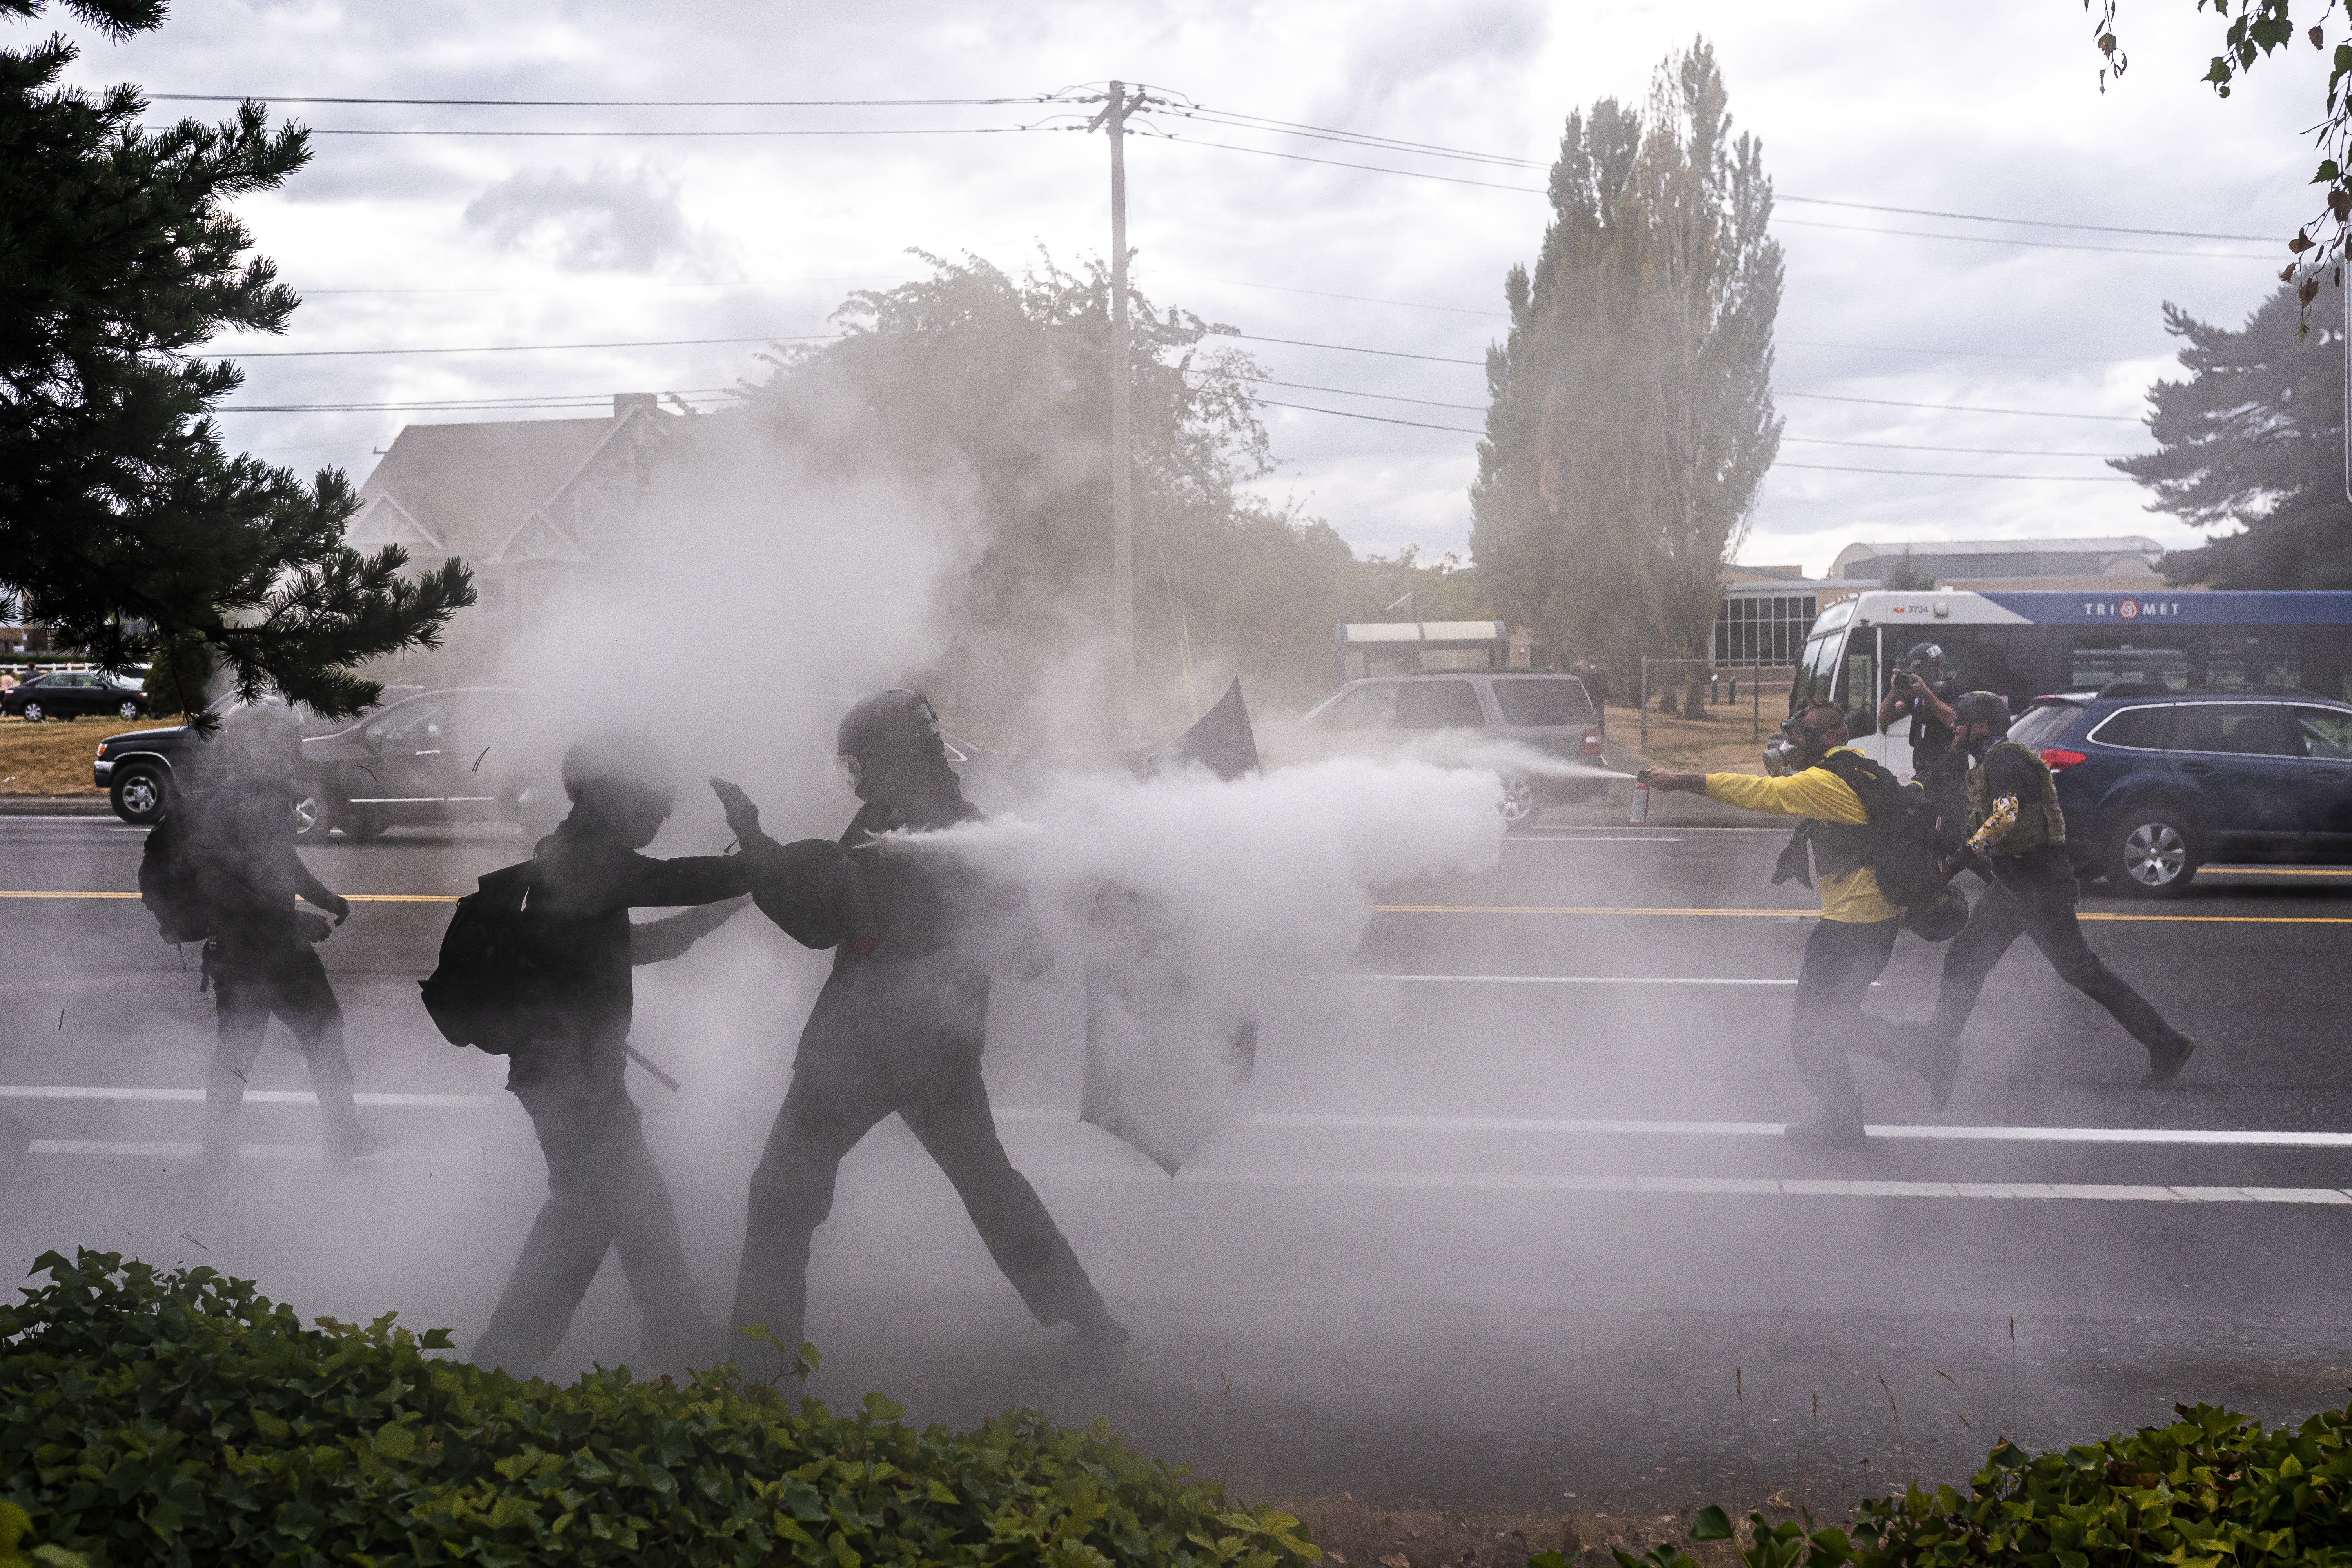 Portland residents felt 'abandoned' by police during clash